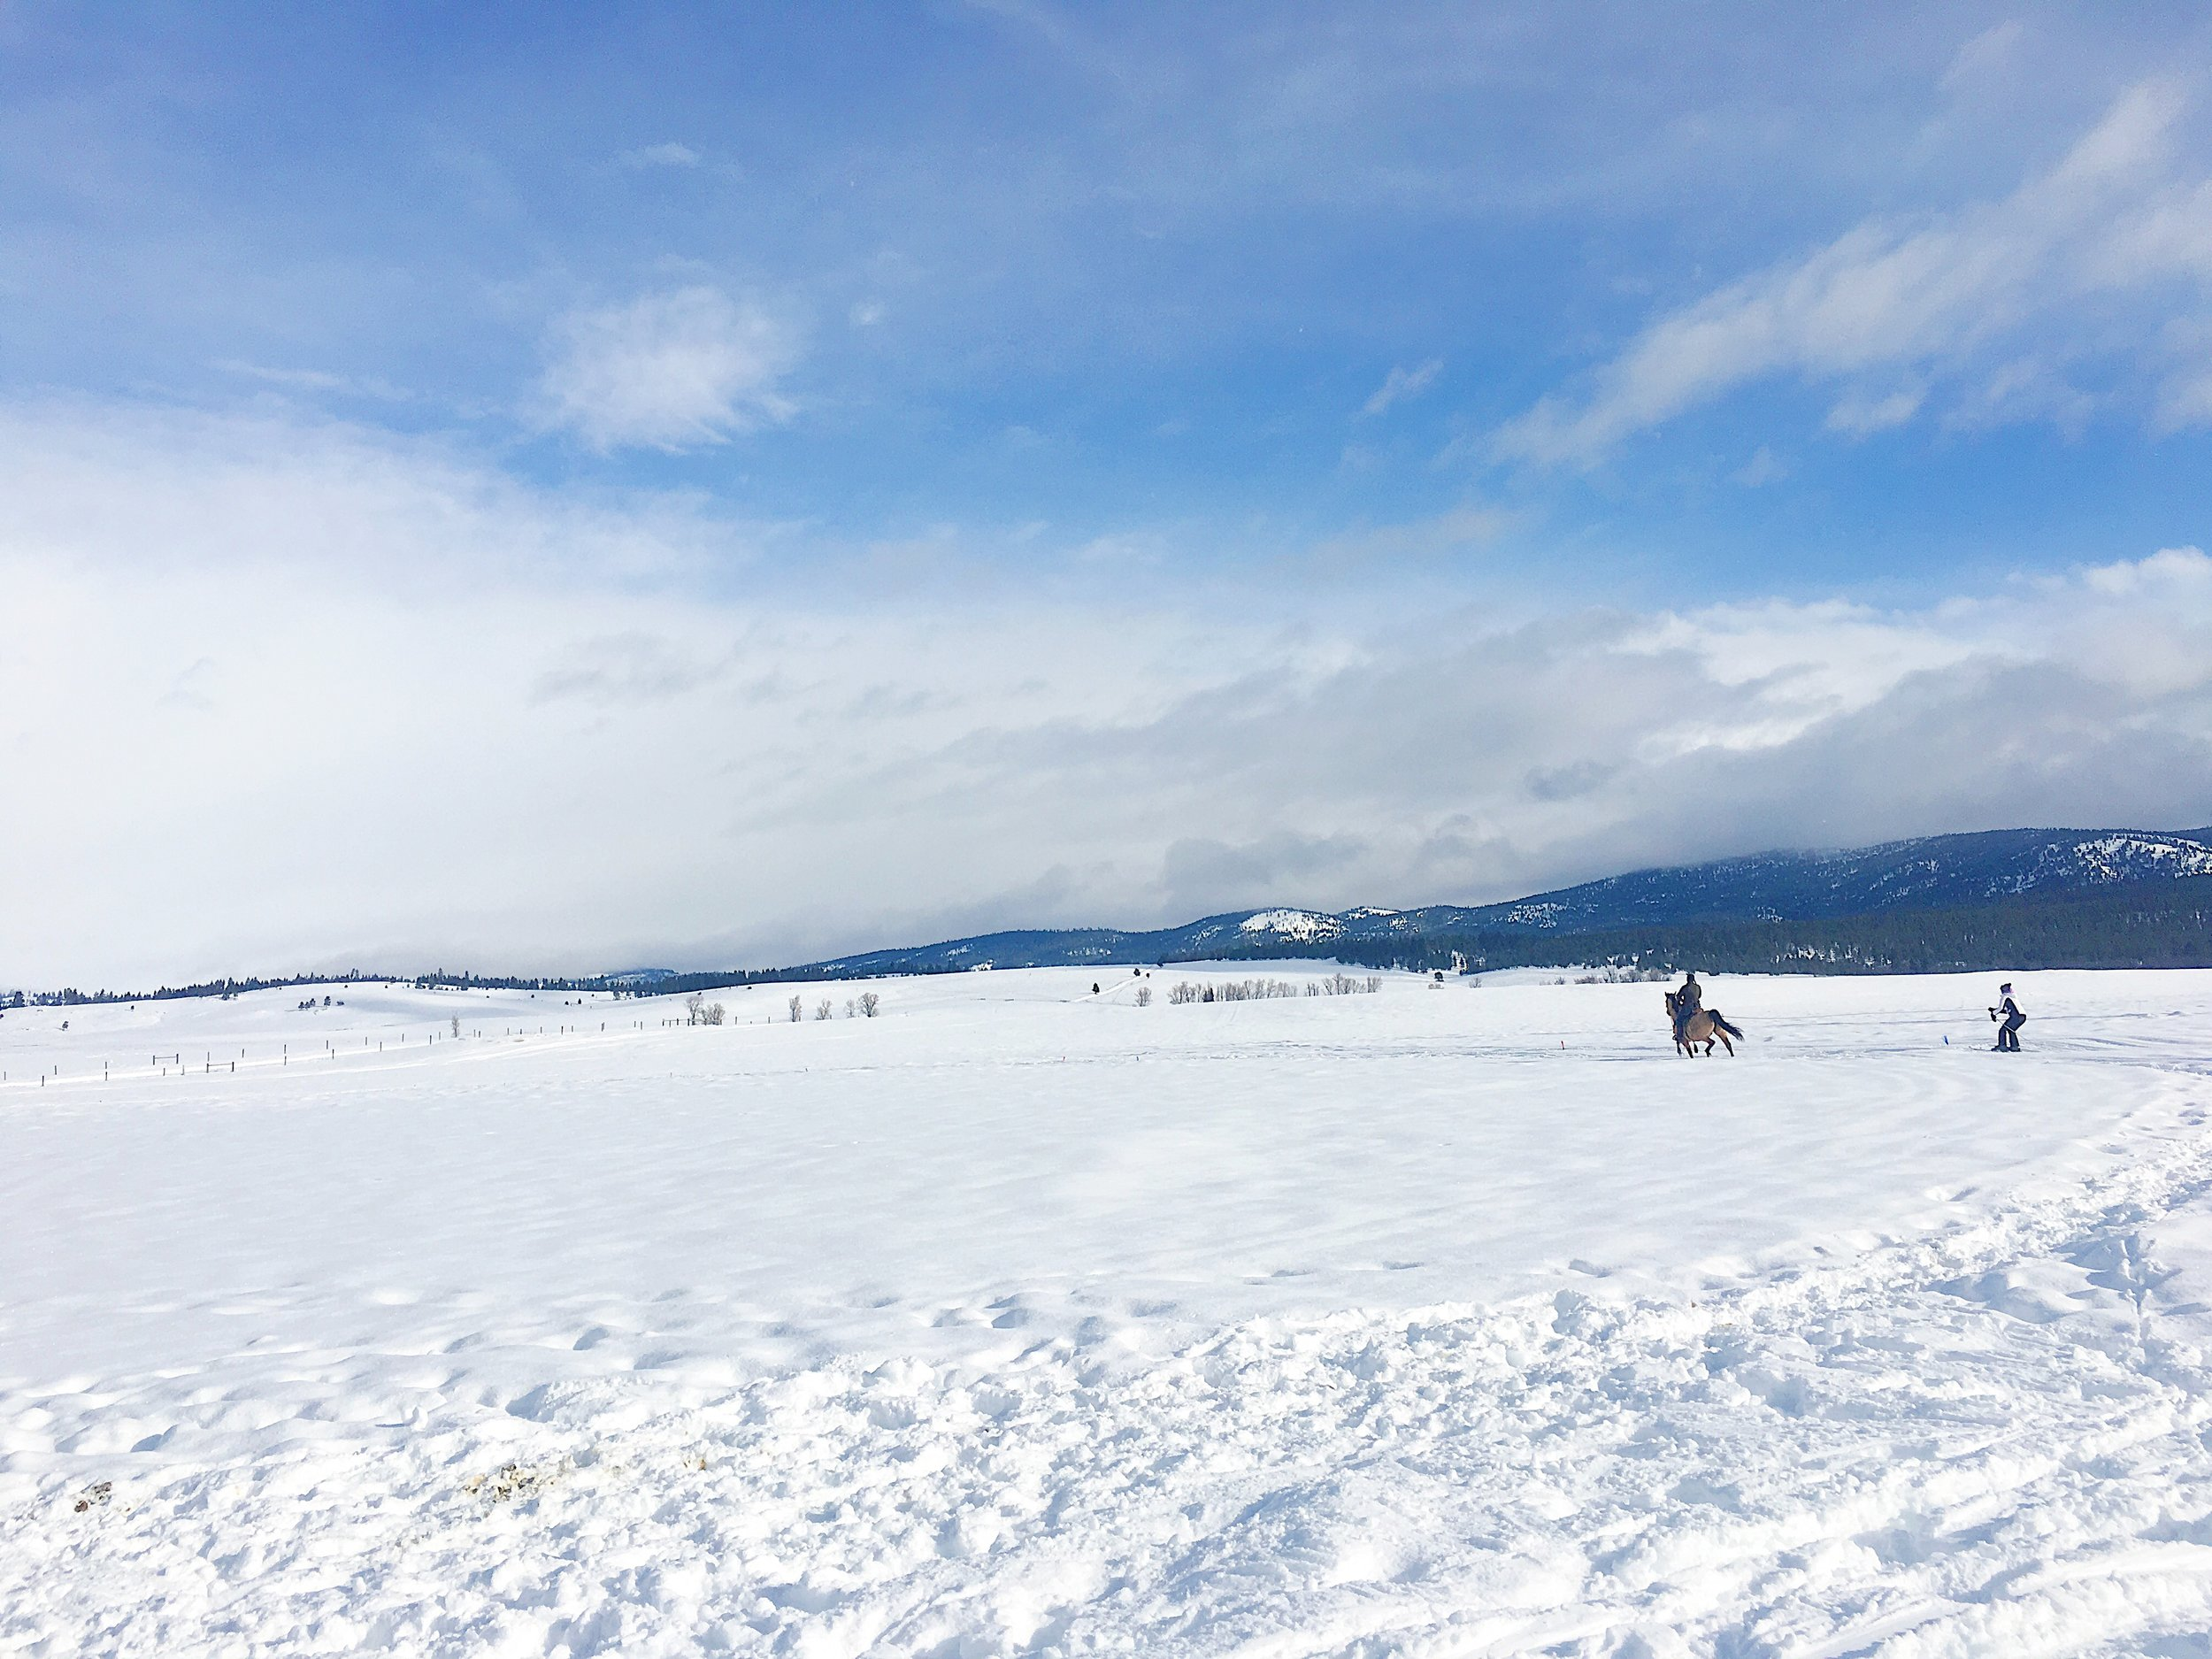 Skijoring is harder than it looks!